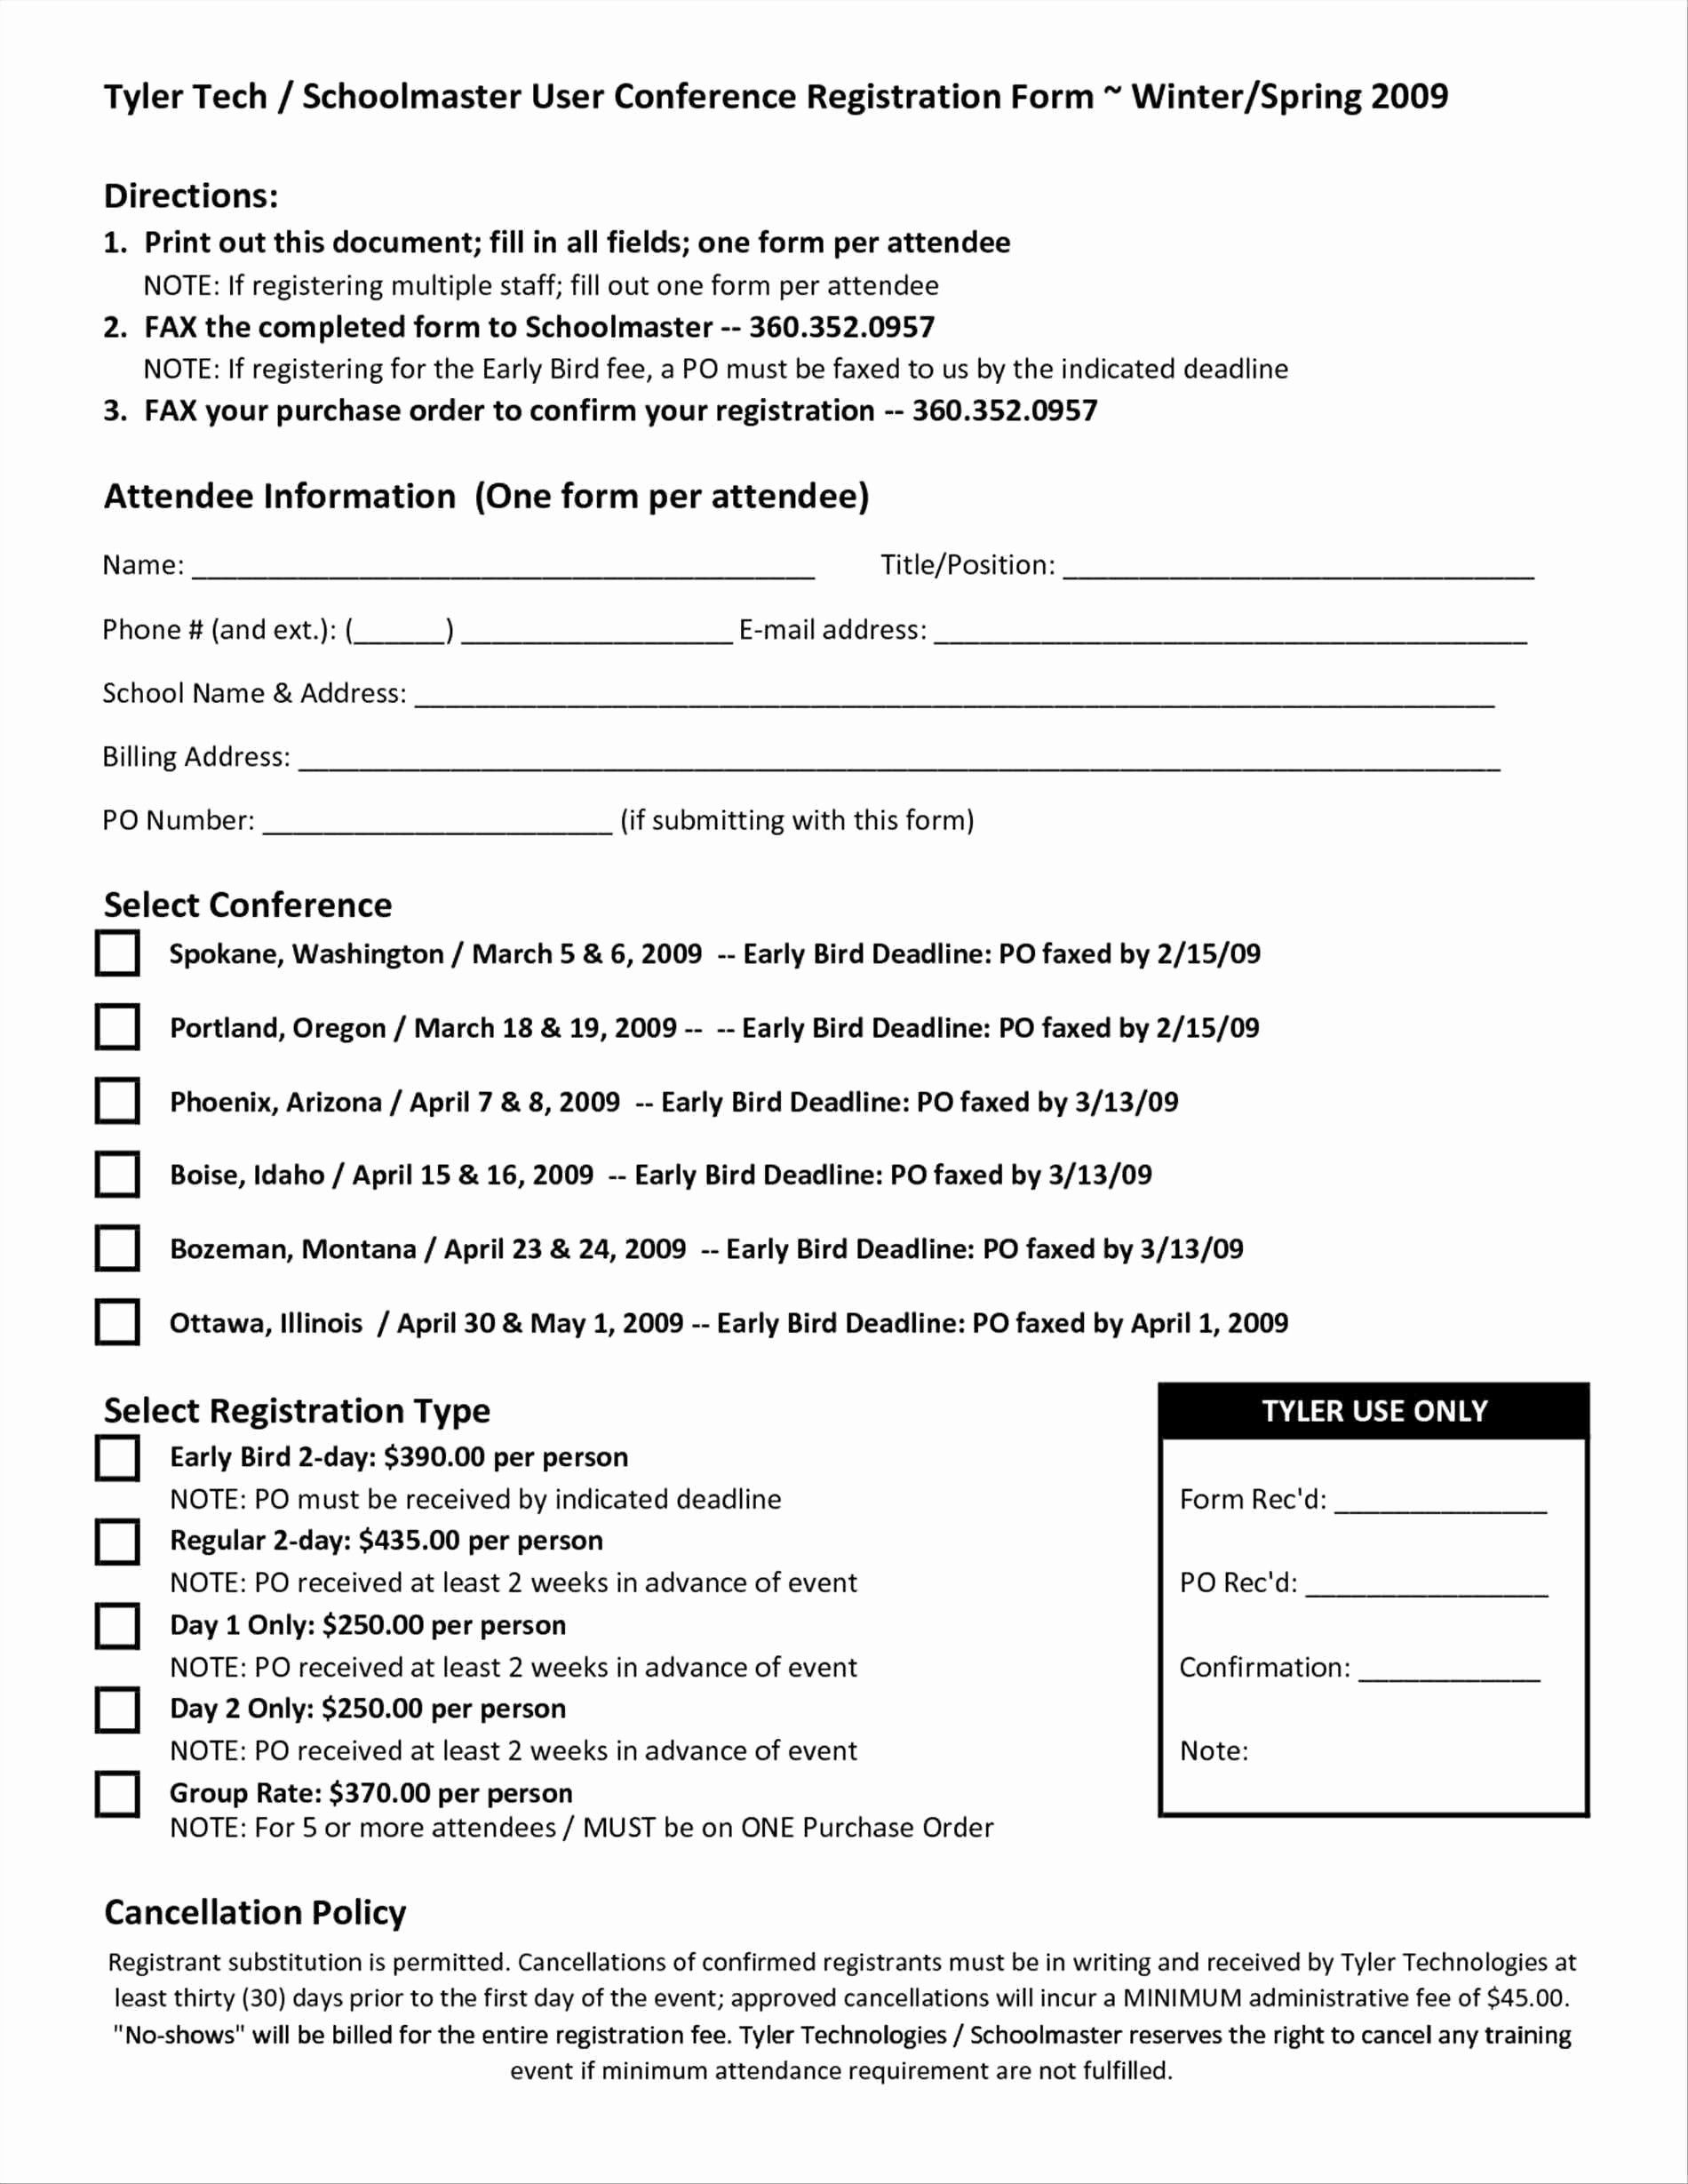 Membership Form Template.doc | Template  | Reunion | Pinterest - Free Printable Membership Forms